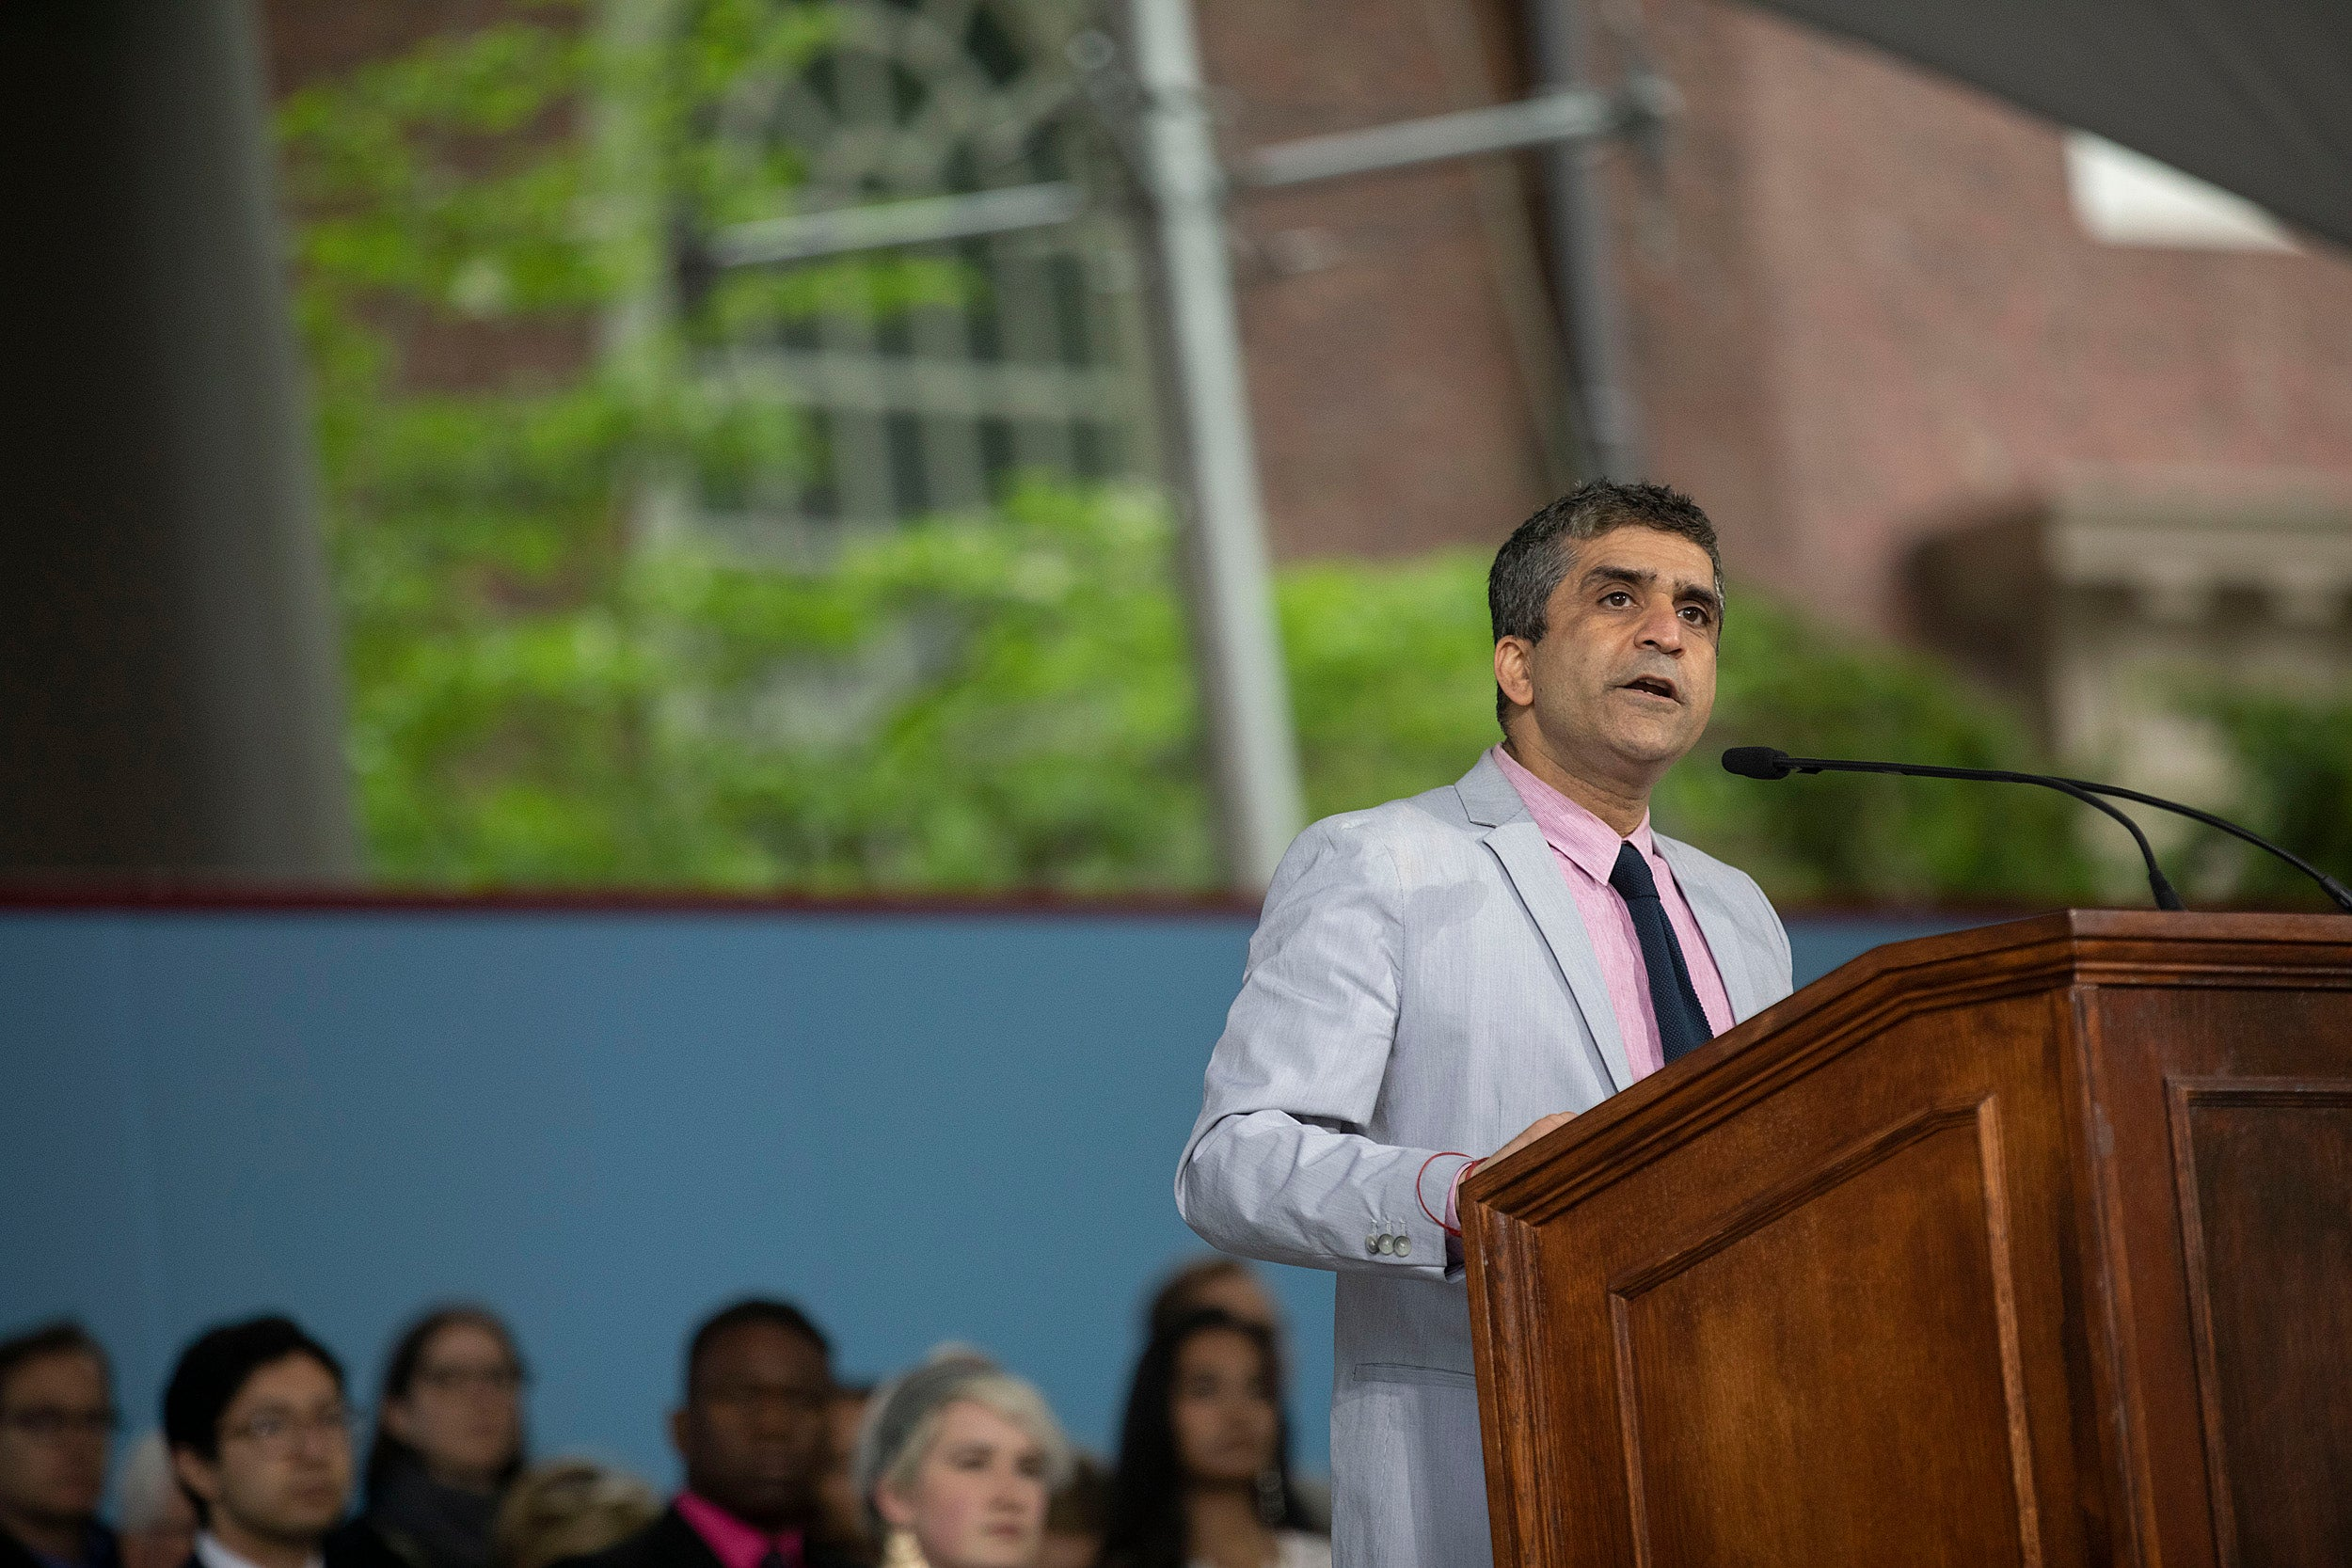 Dean of Harvard College Rakesh Khurana speaks at the podium